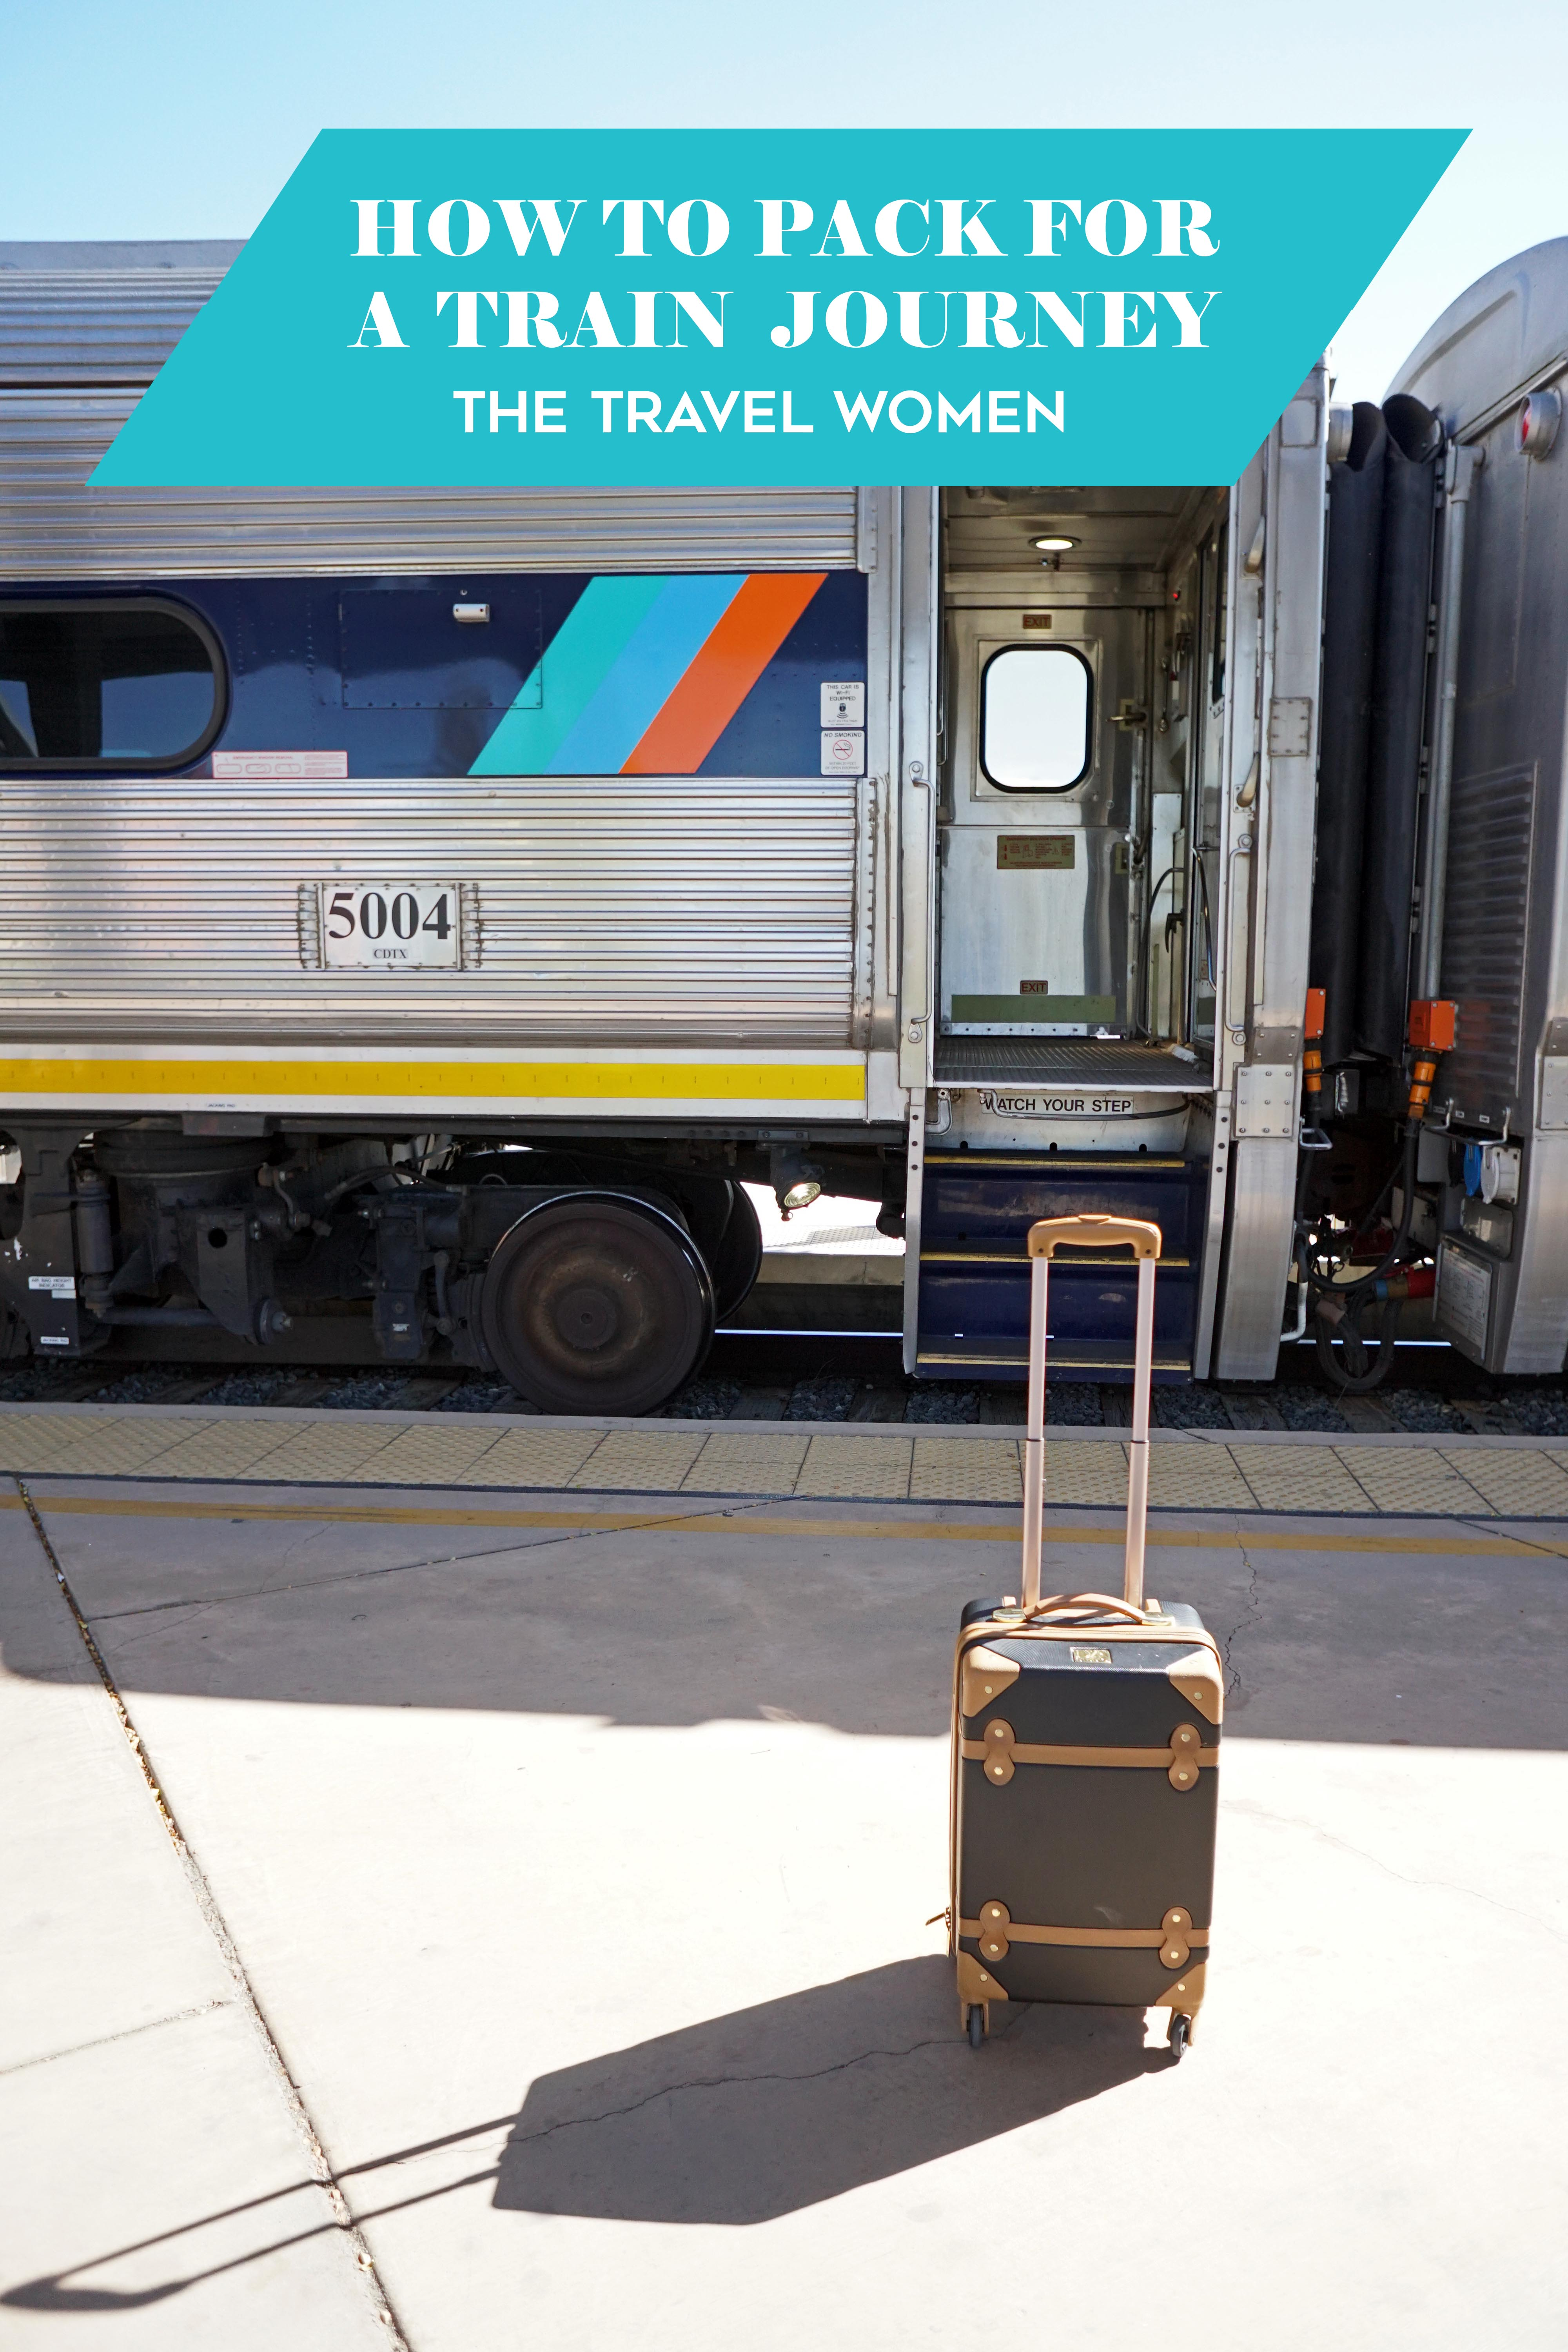 title on top of a photo of a train with door open and a suitcase in front